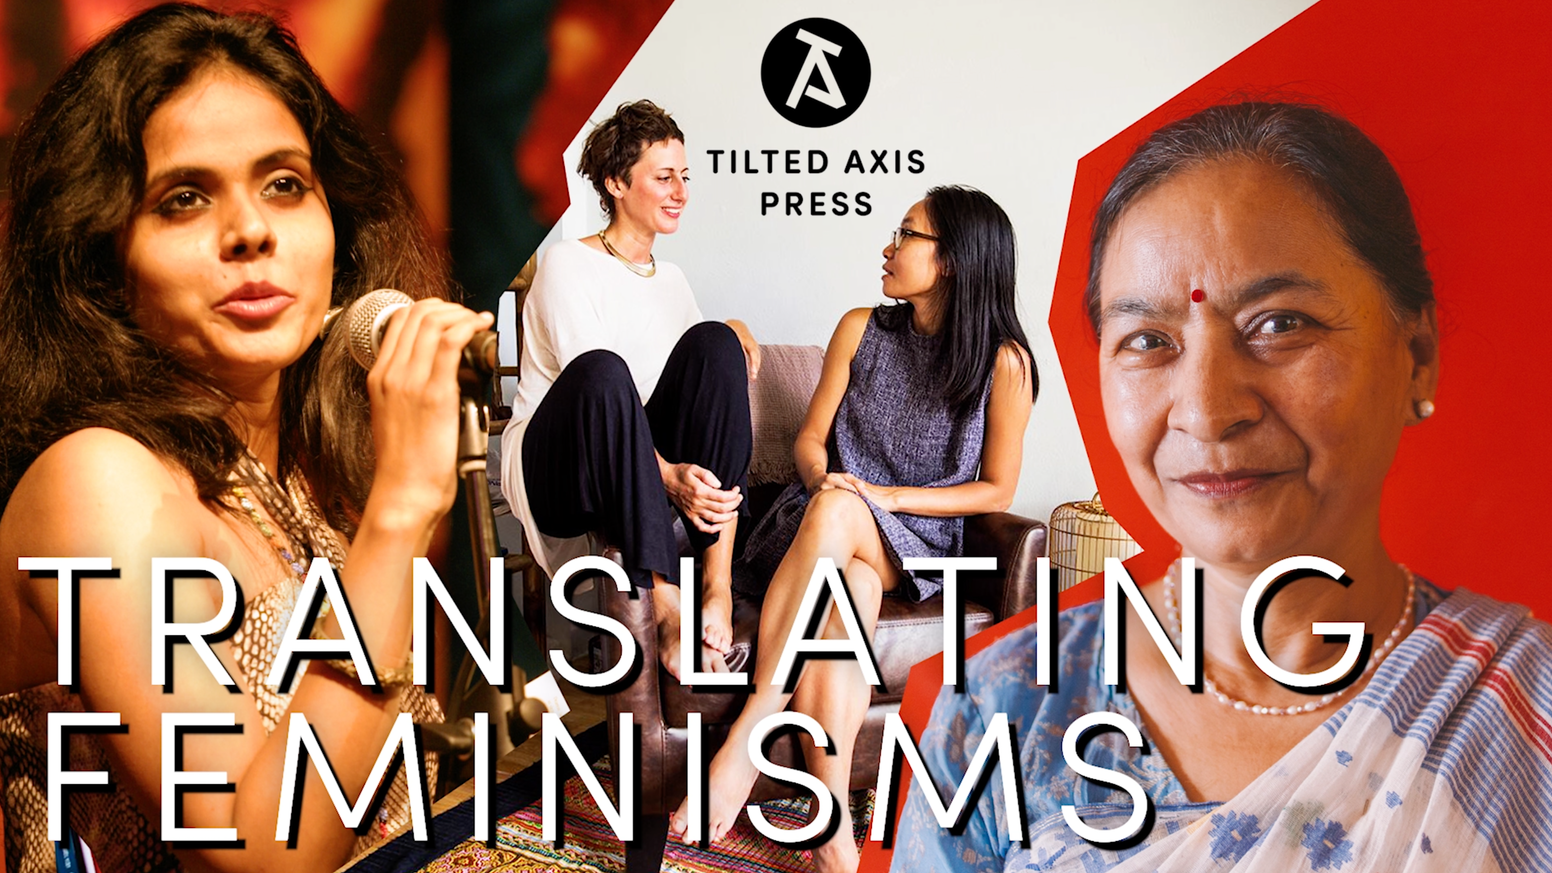 Translating Feminisms is a set of chapbooks showcasing poetry & essays from Vietnam, Nepal, South India - with more to be revealed.